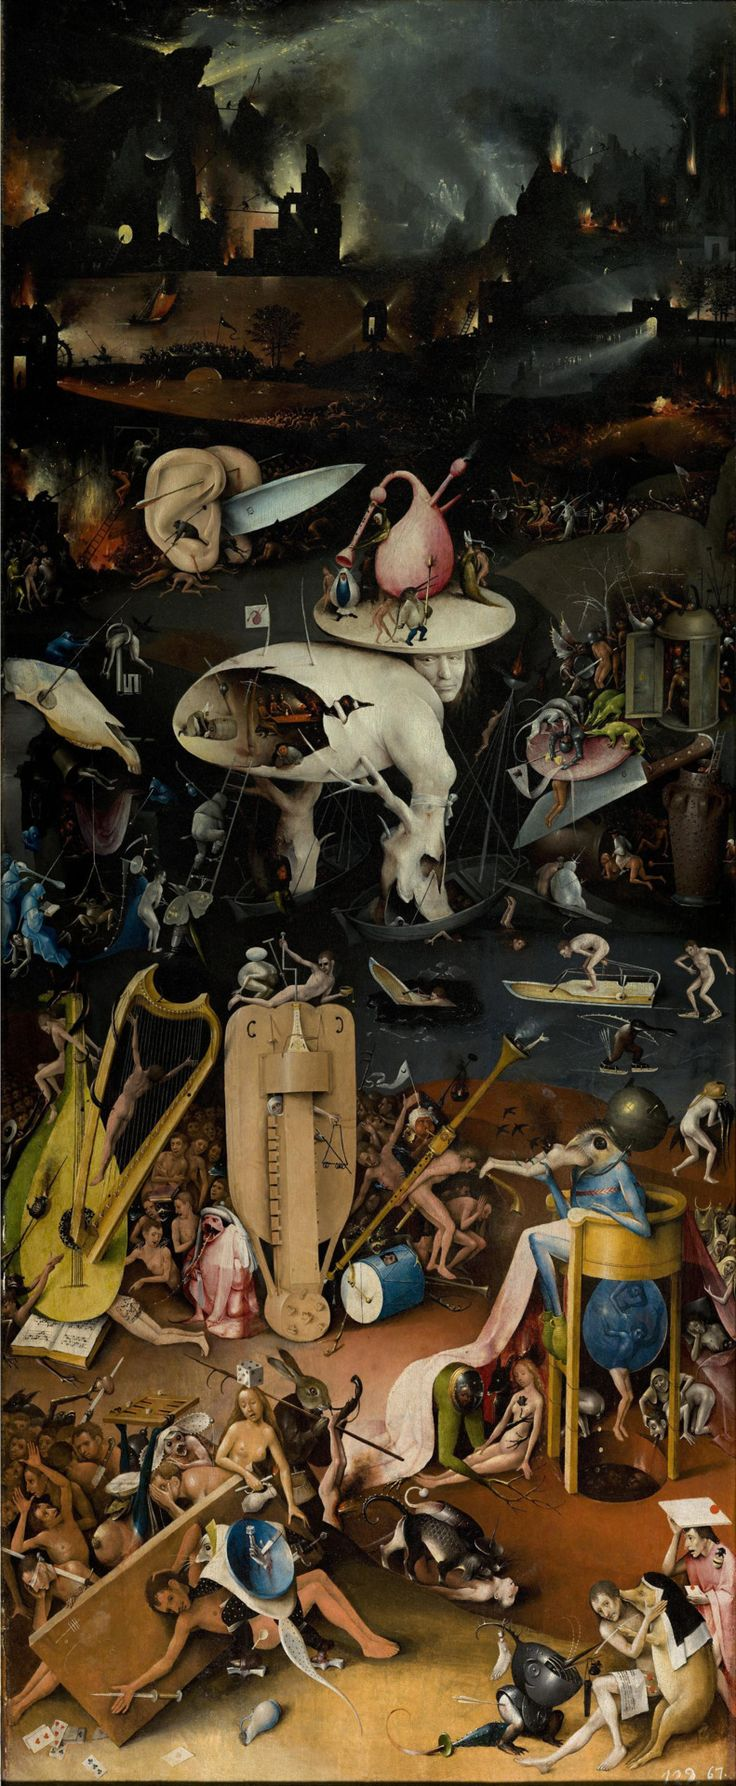 Hieronymus Bosch, The Garden of Earthly Delights (Right Panel), 1515. Museo del Prado, Madrid, Spain.